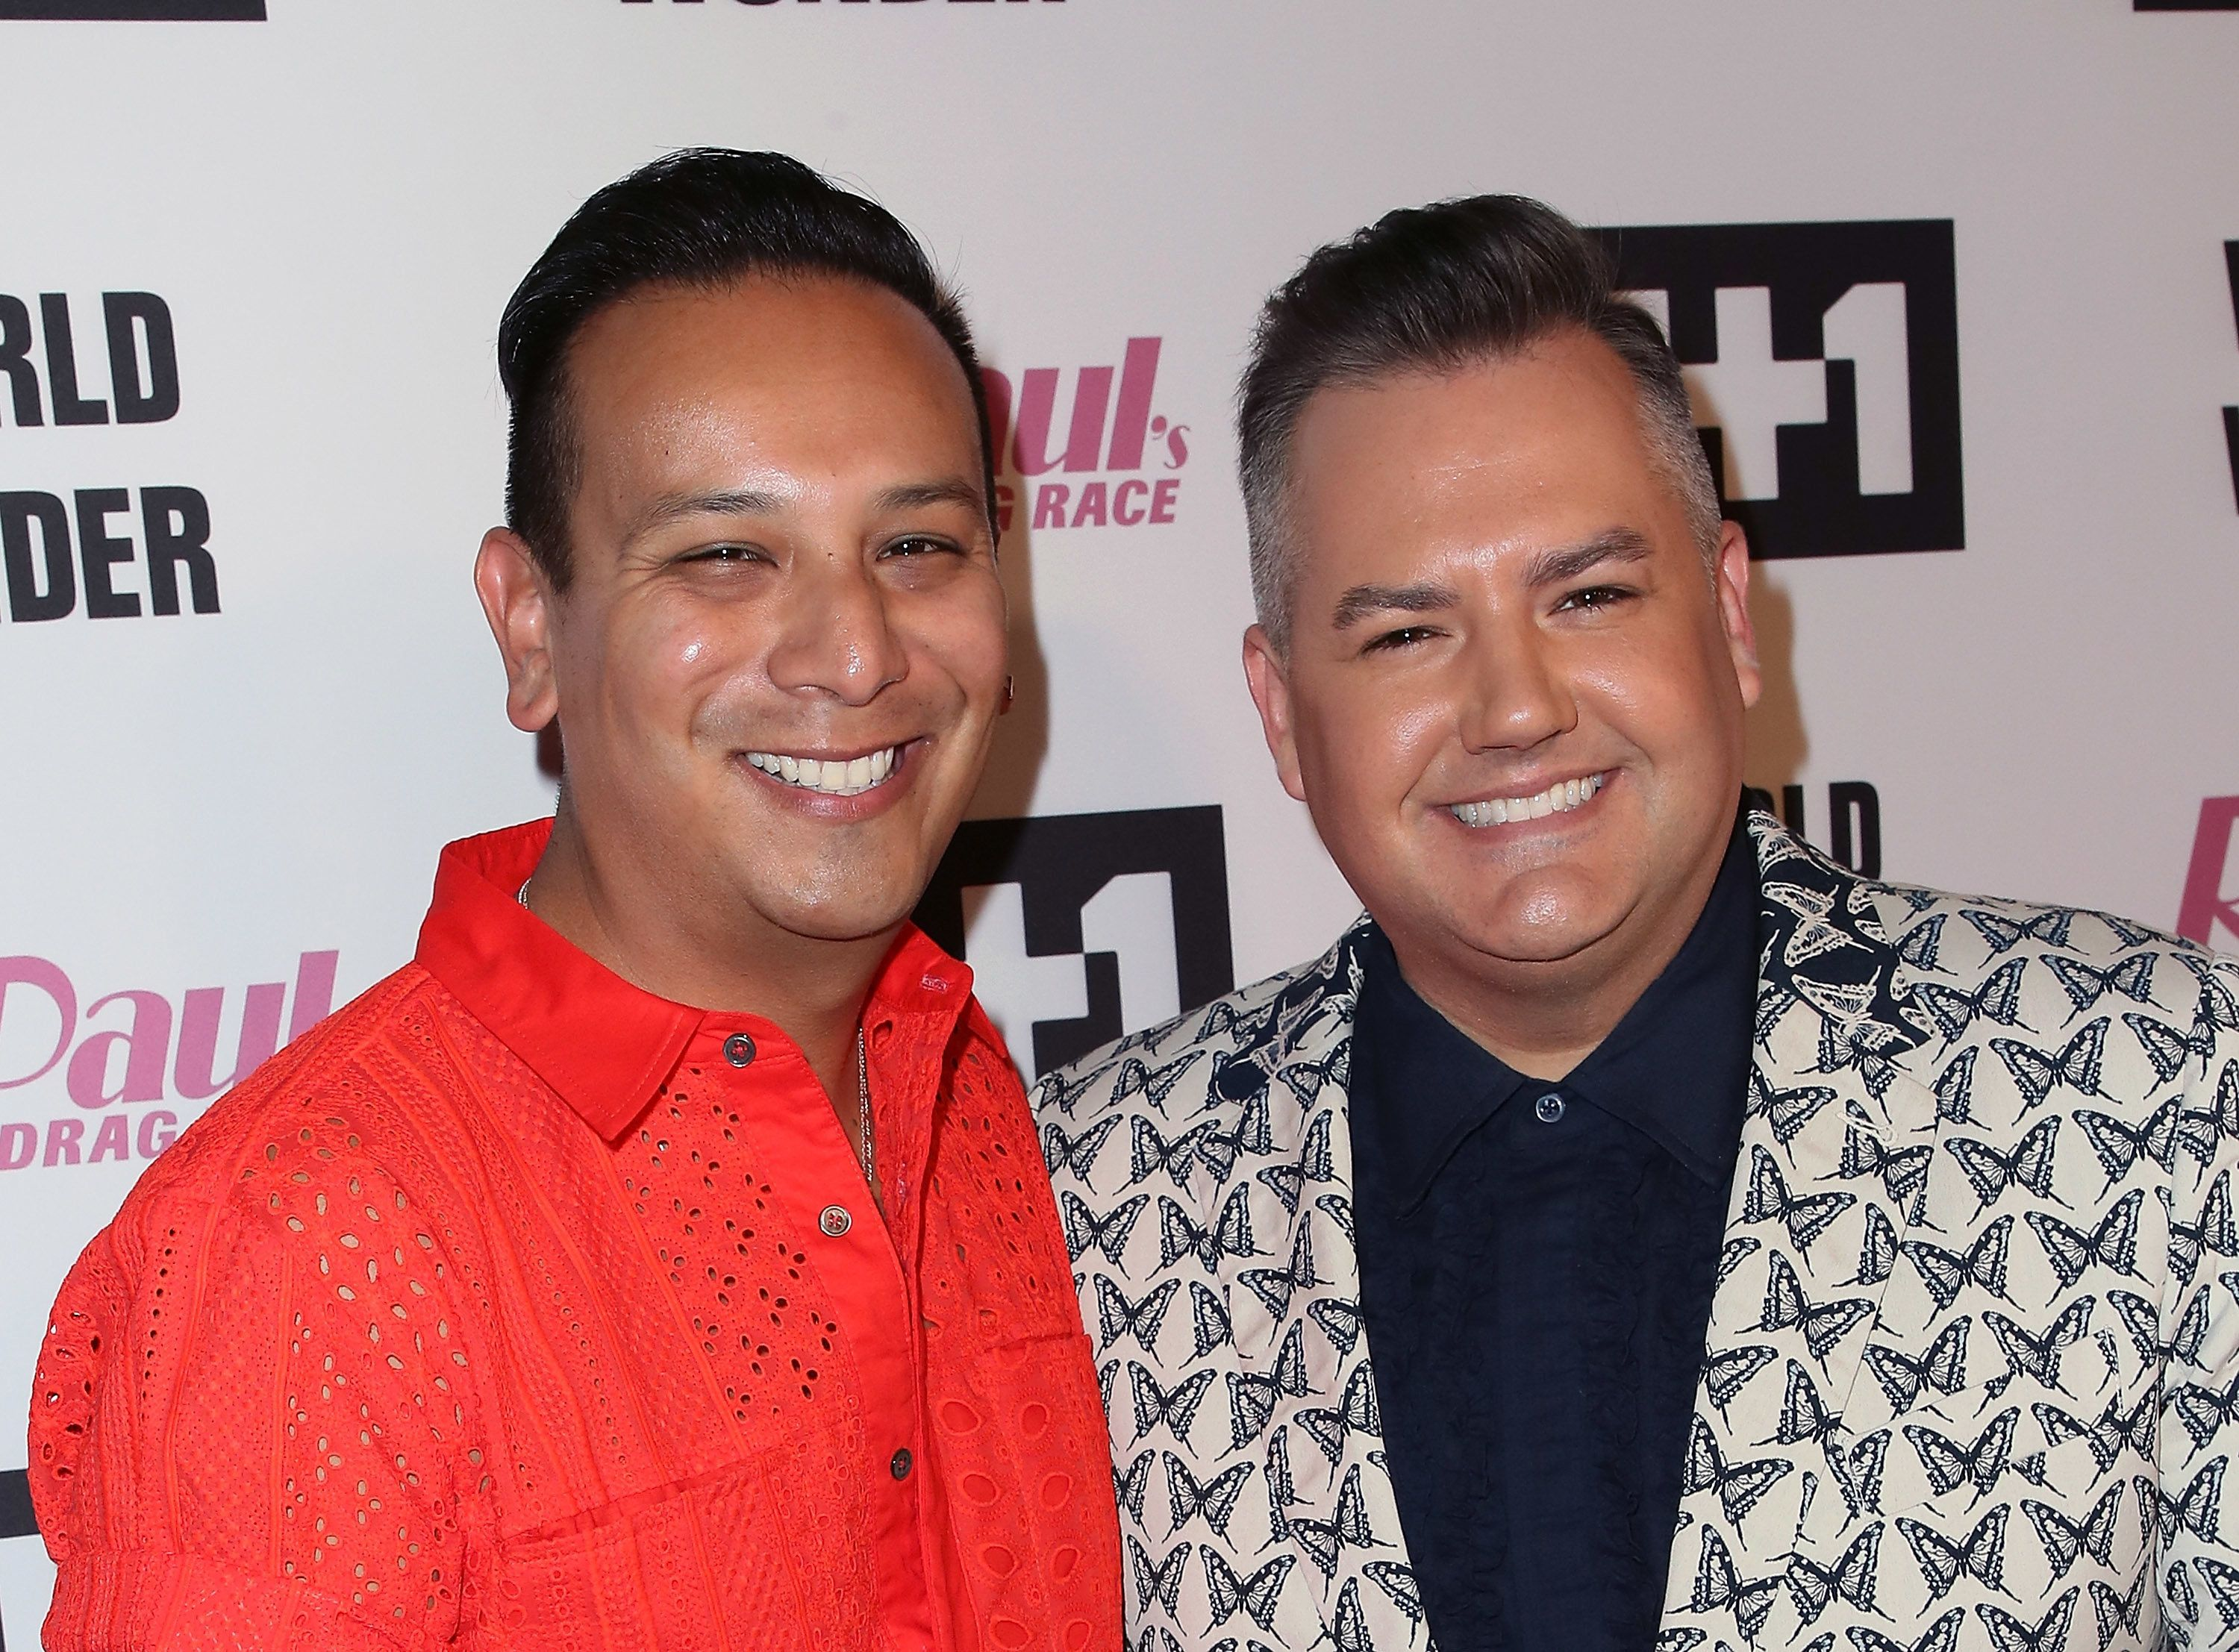 Ross Mathews (right) and Salvador Camarena had been dating since 2008.